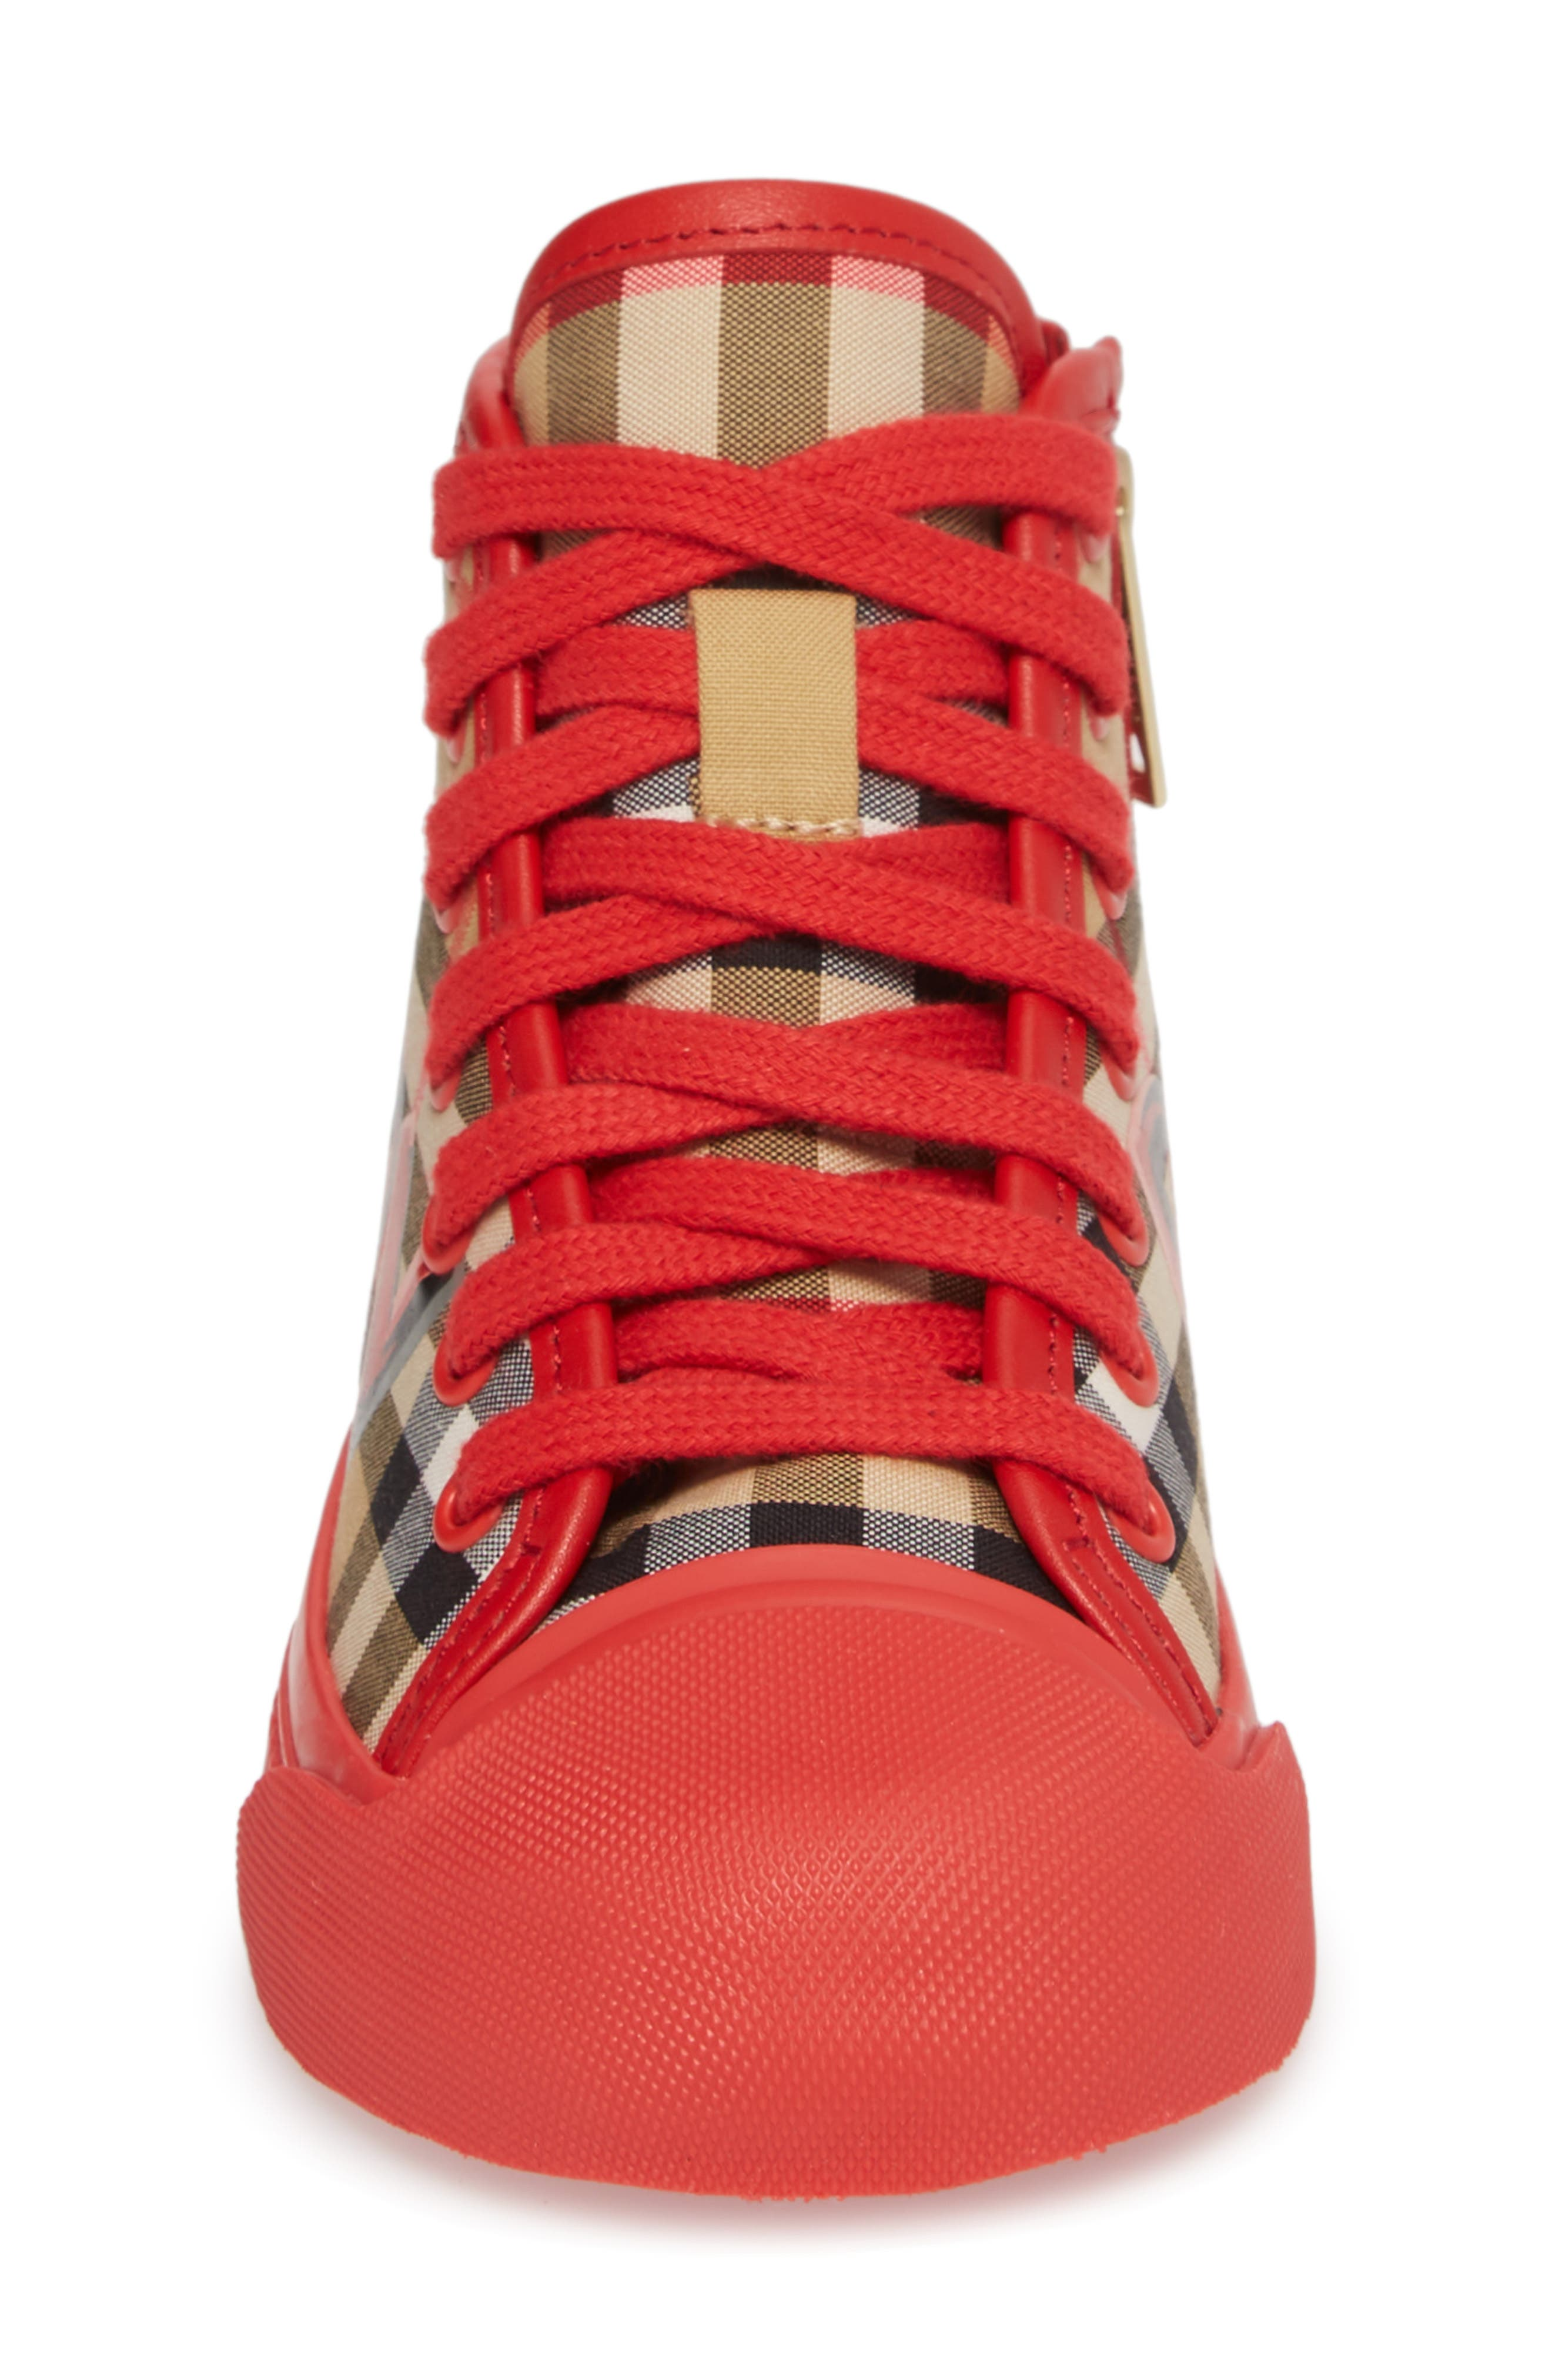 Mini Kingly High Top Sneaker,                             Alternate thumbnail 4, color,                             BRIGHT RED